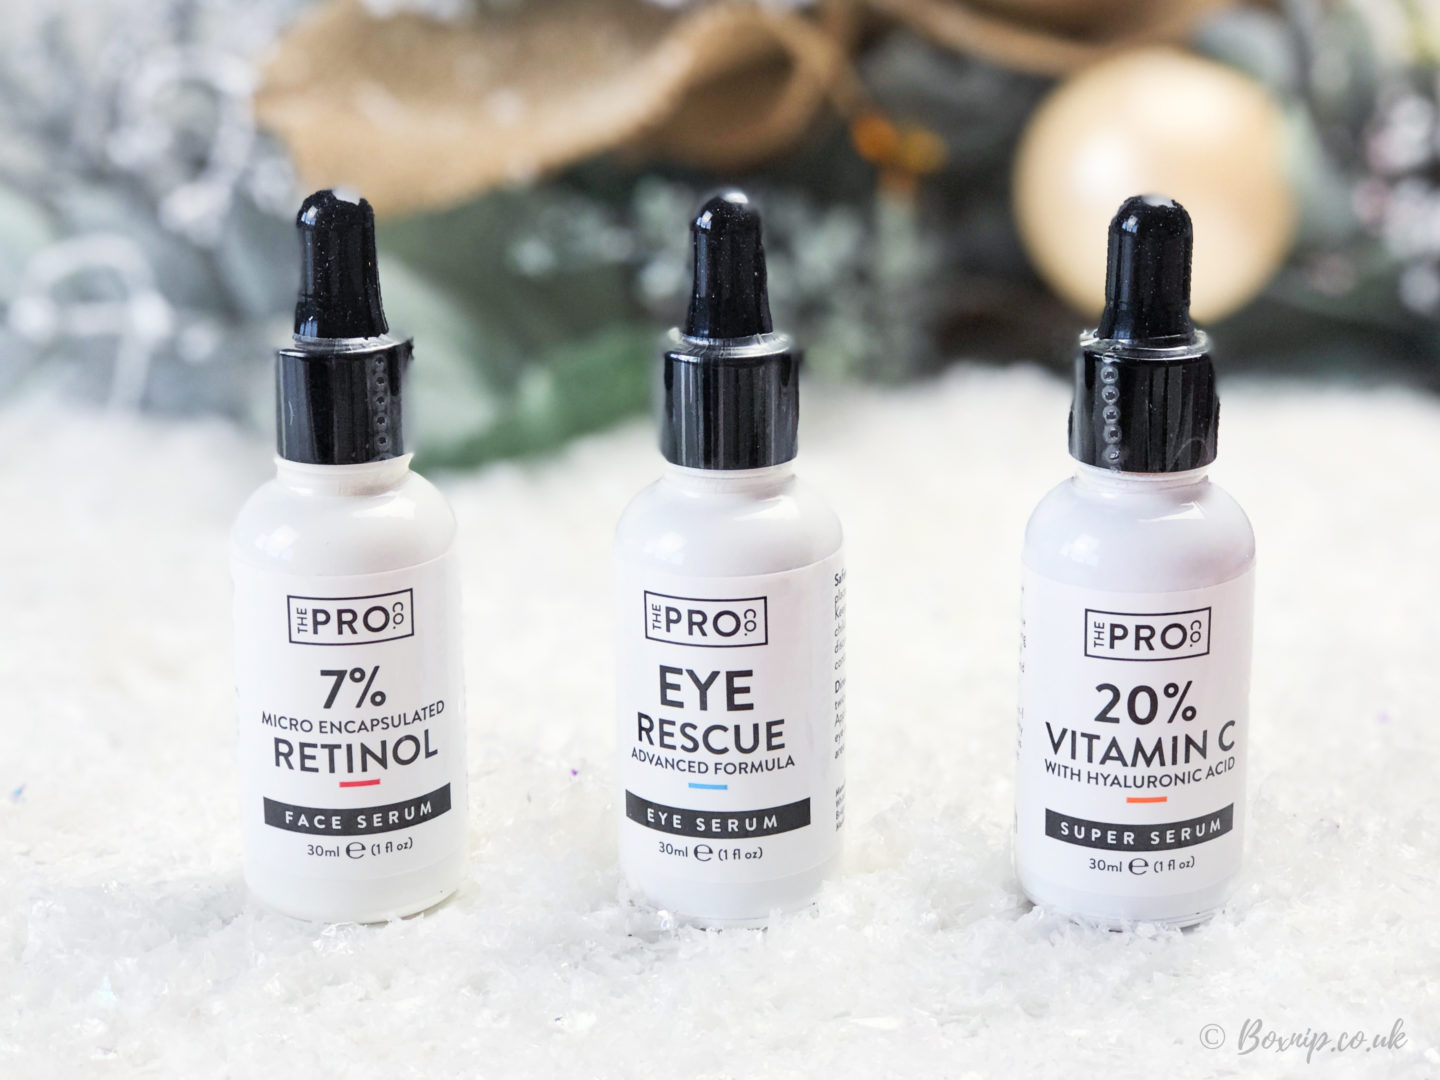 The Pro Co, ethical vegan serums